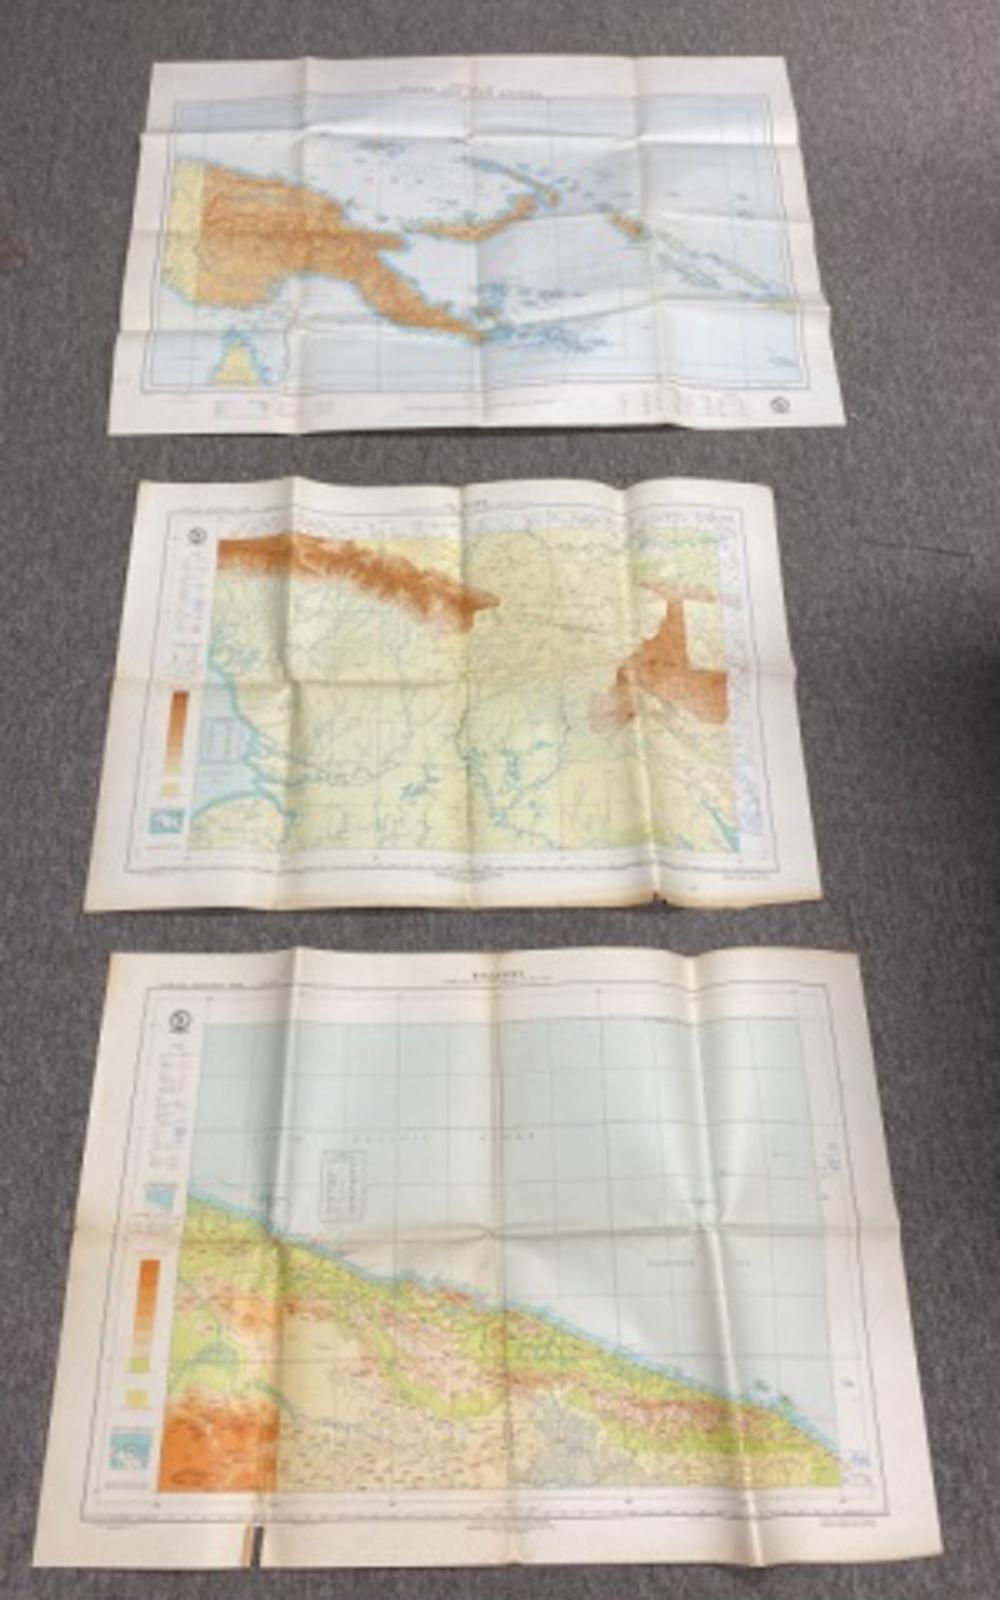 3 Maps of New Guinea in 1961, 1962, and 1964